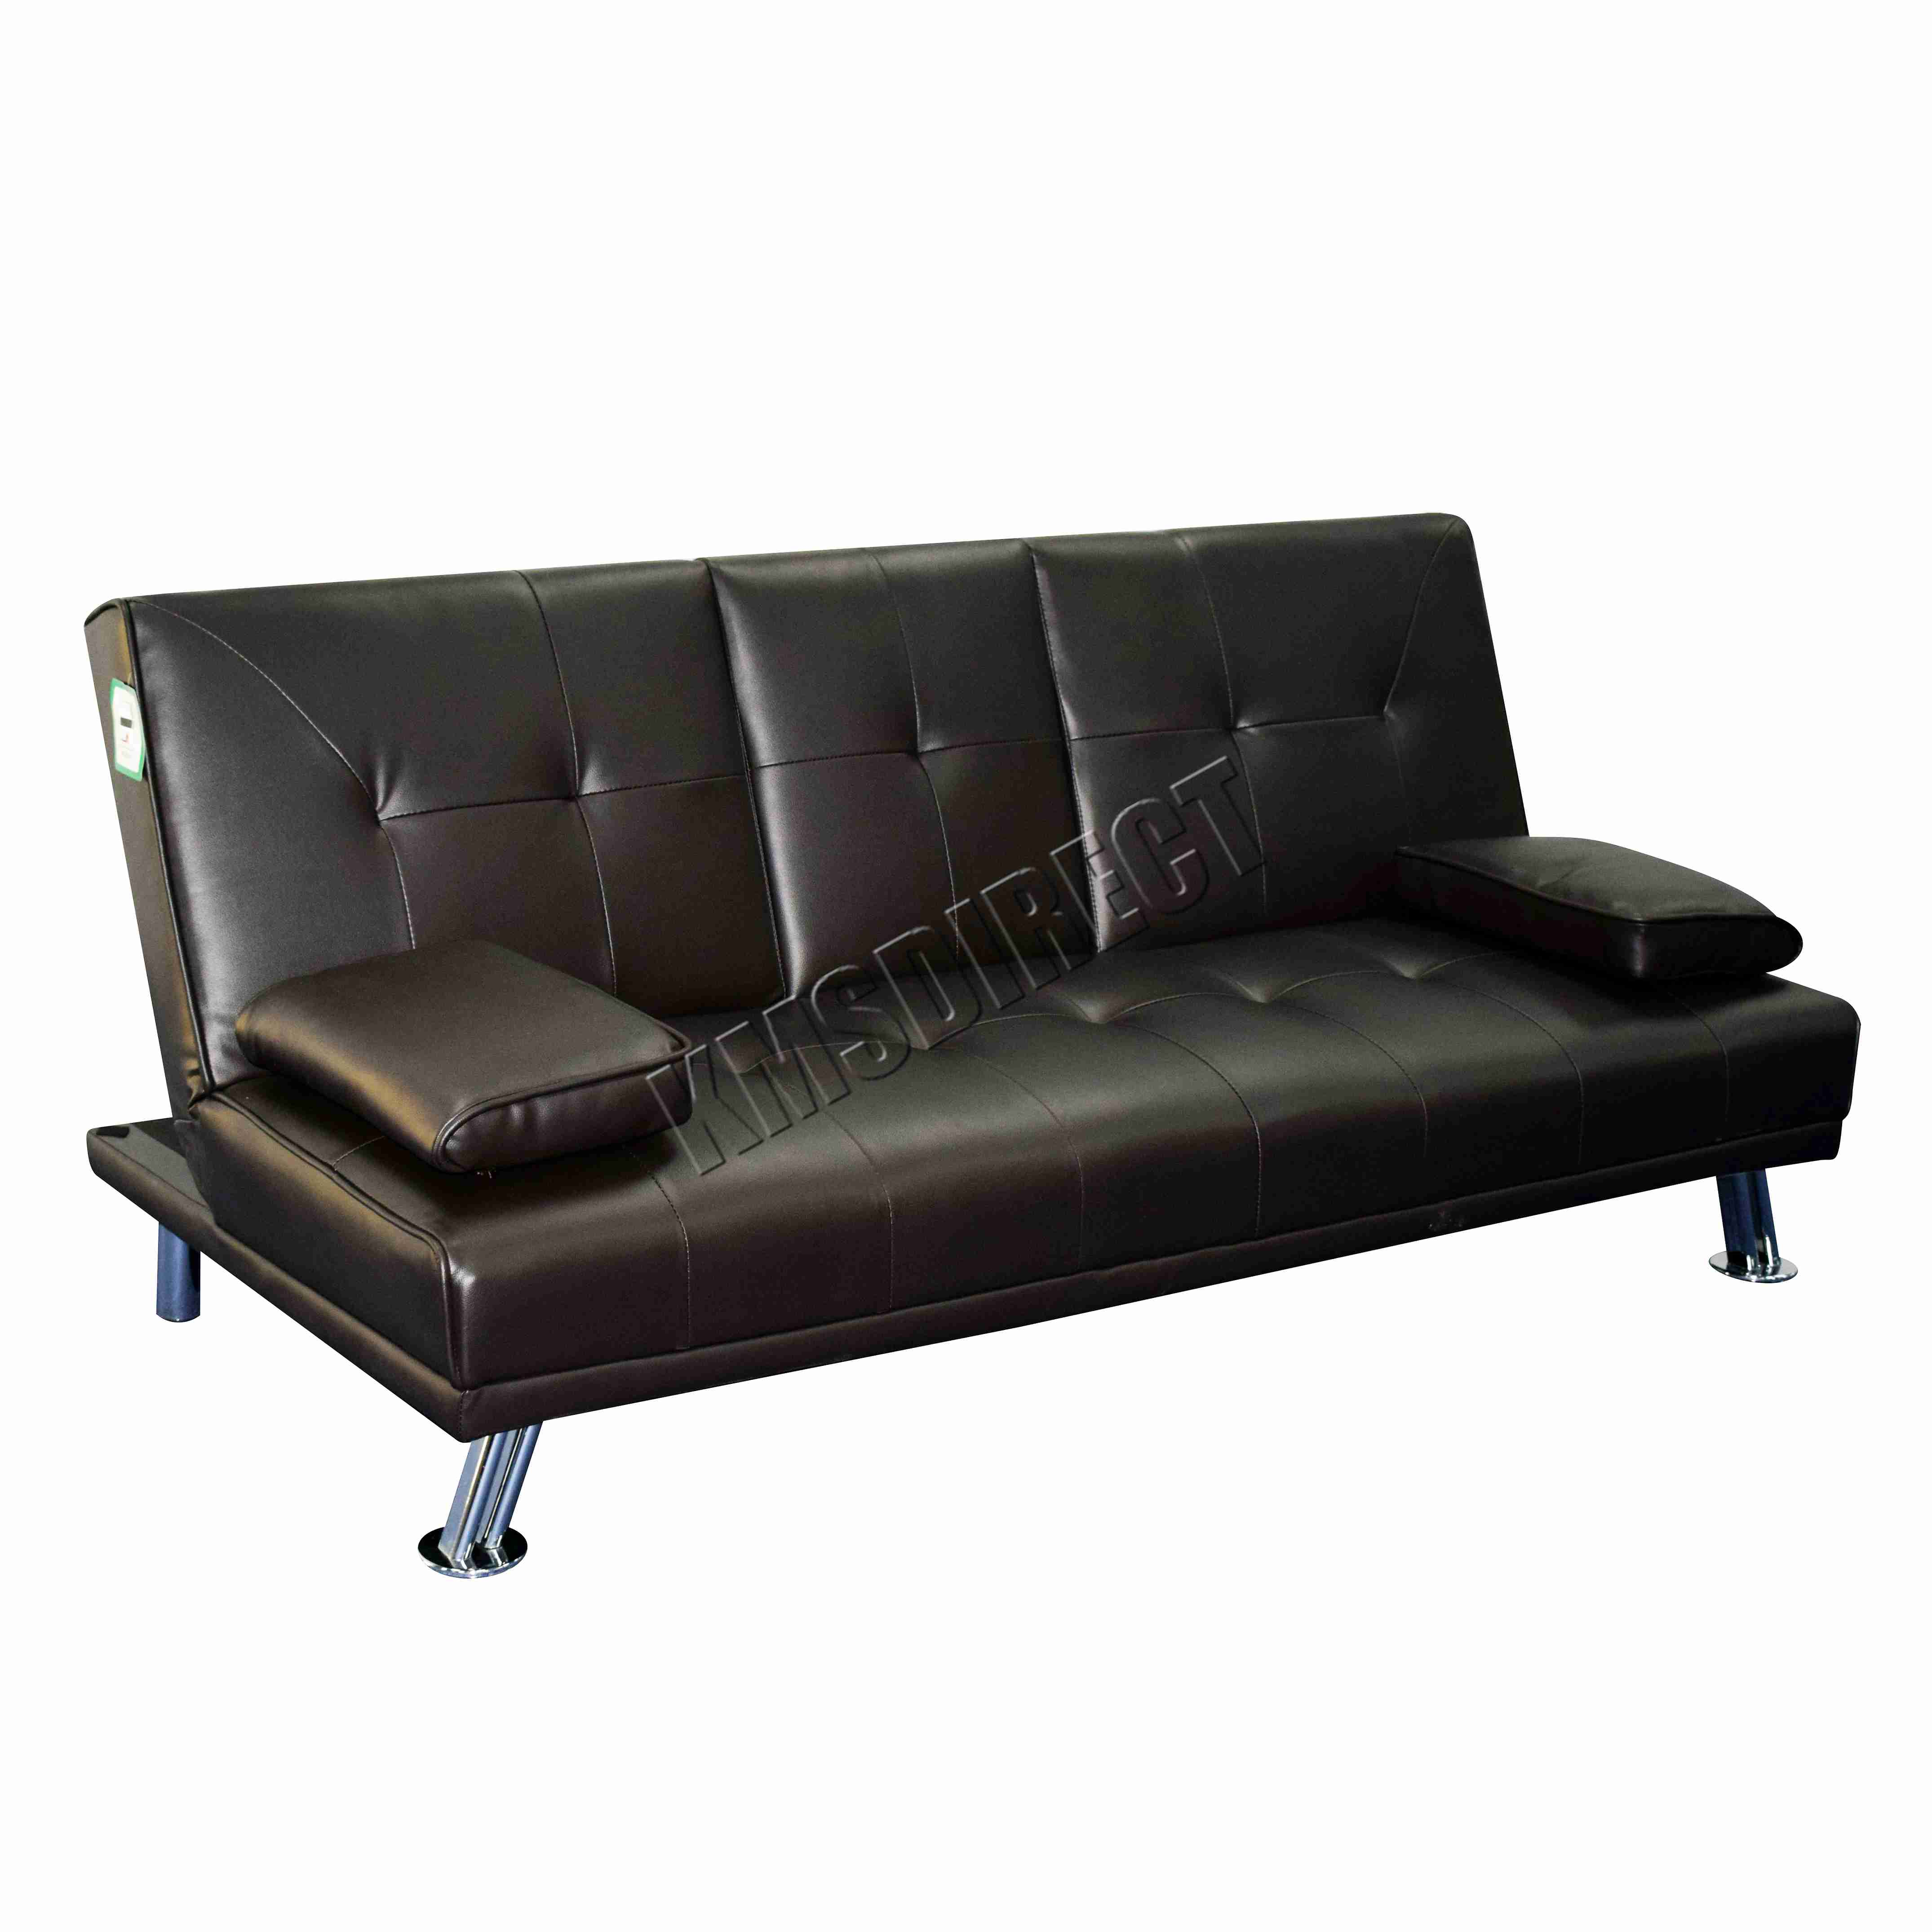 Leather Double Sofa Bed Large Leather Double Sofa Bed Pair